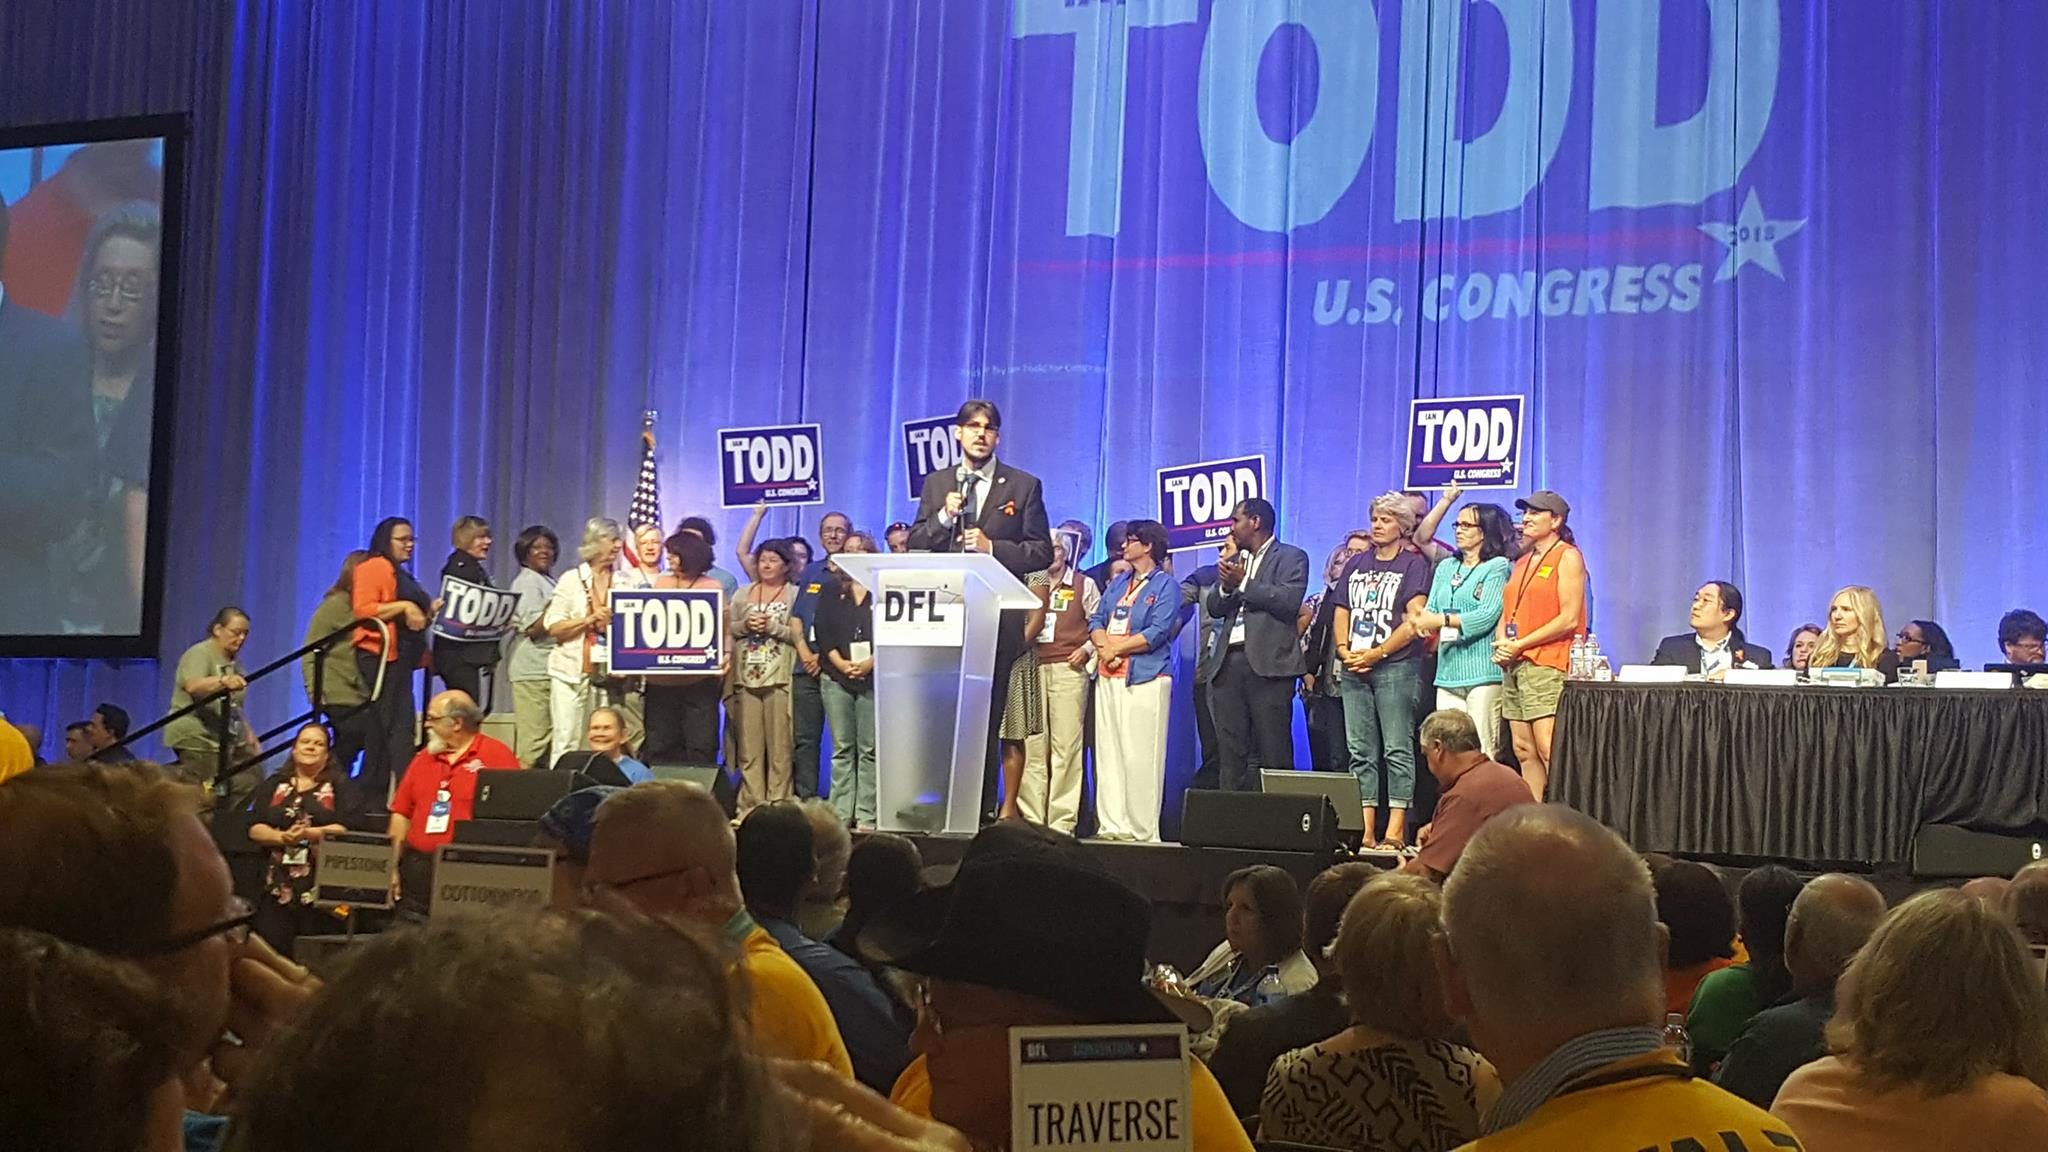 Congressional candidate Ian Todd speaking at the Minnesota democratic convention about the election in 2018.